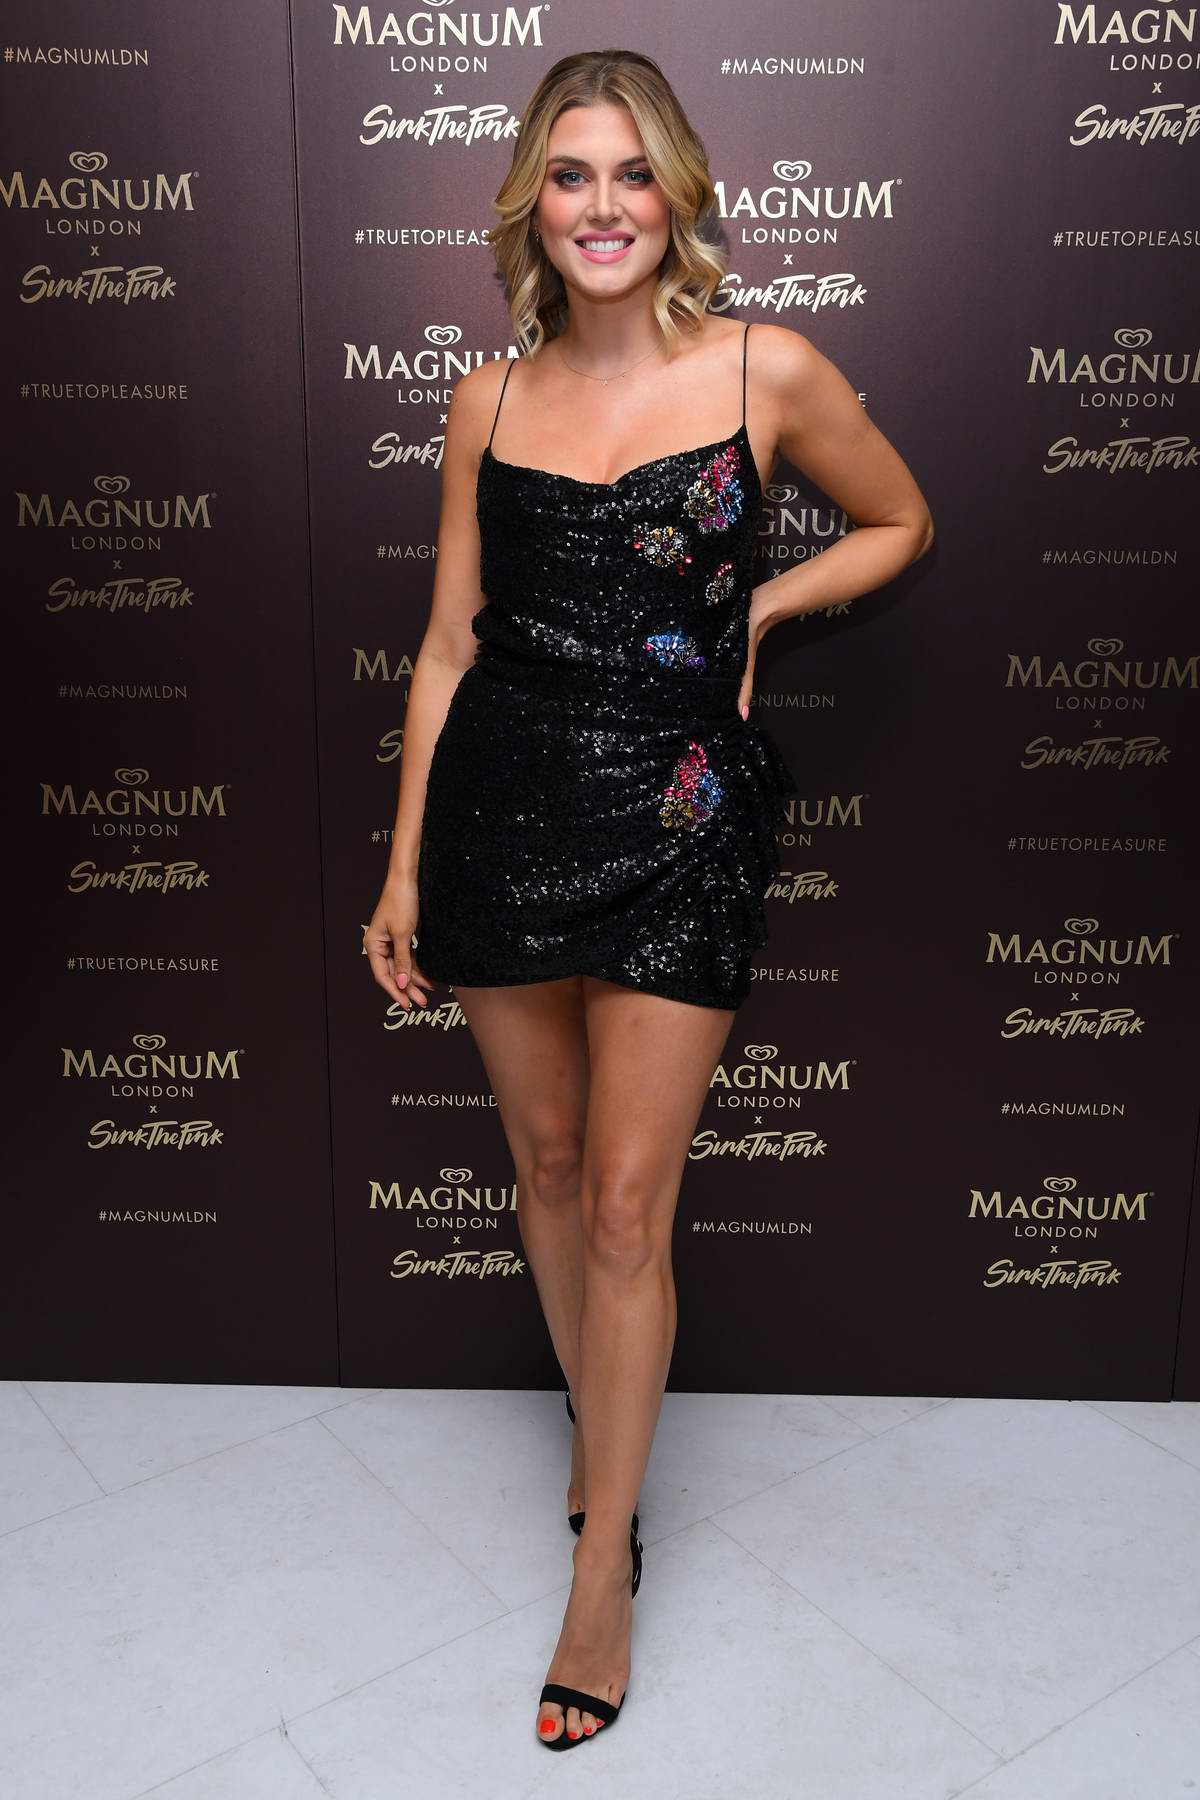 Ashley James attends the Magnum Pleasure Store launch party in London, UK